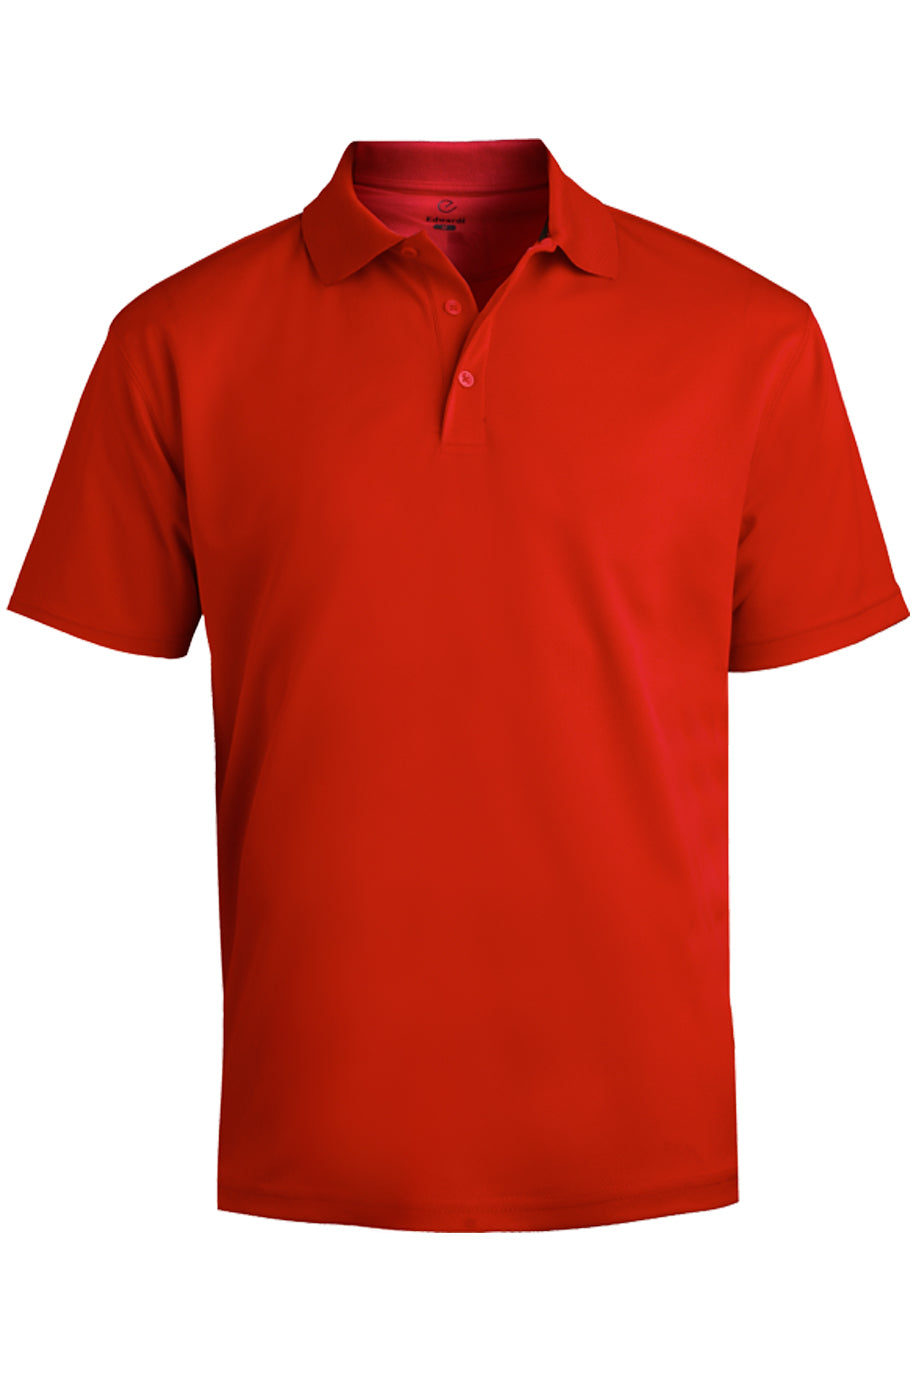 Red Edwards Mens Hi-Performance Mesh Short Sleeve Polo